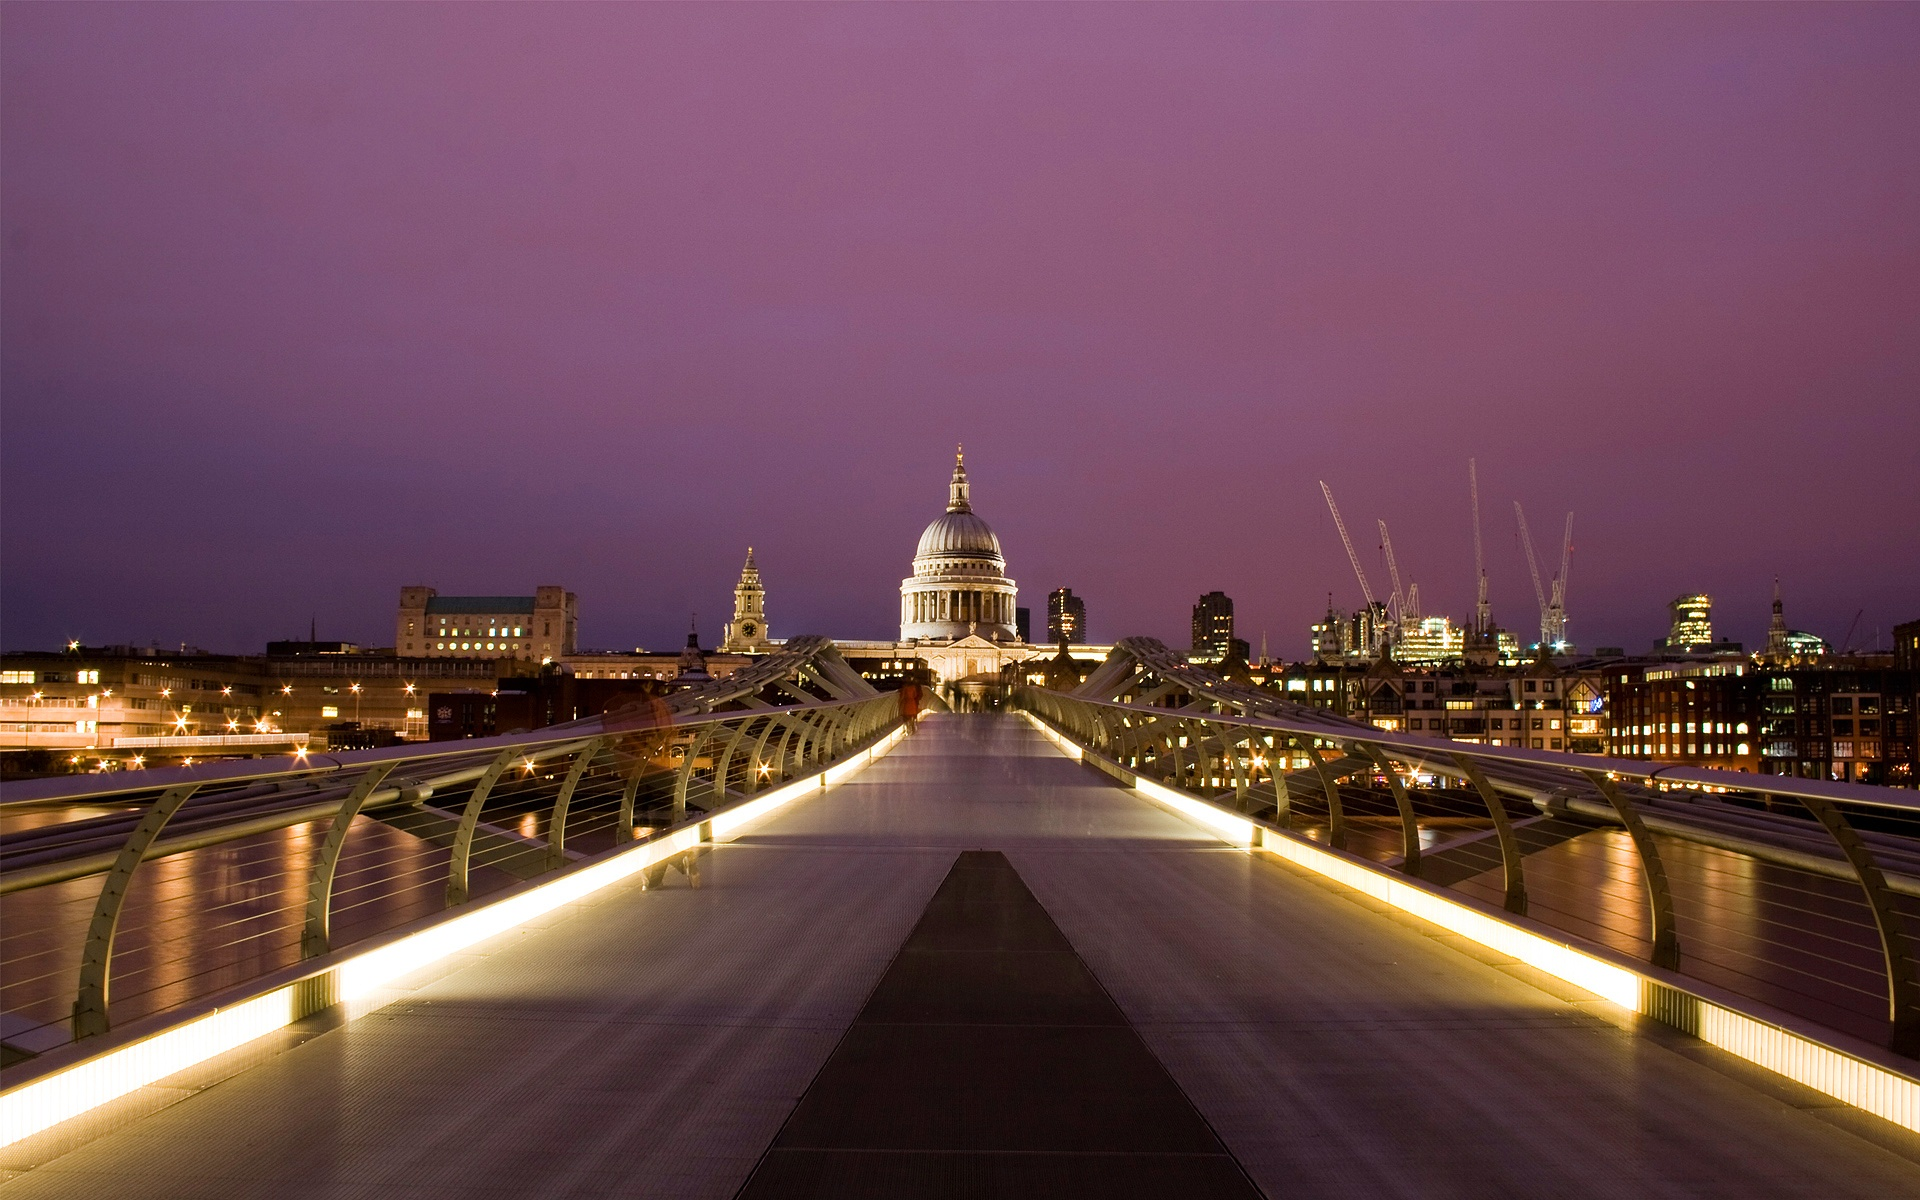 Millennium Bridge London wallpaper